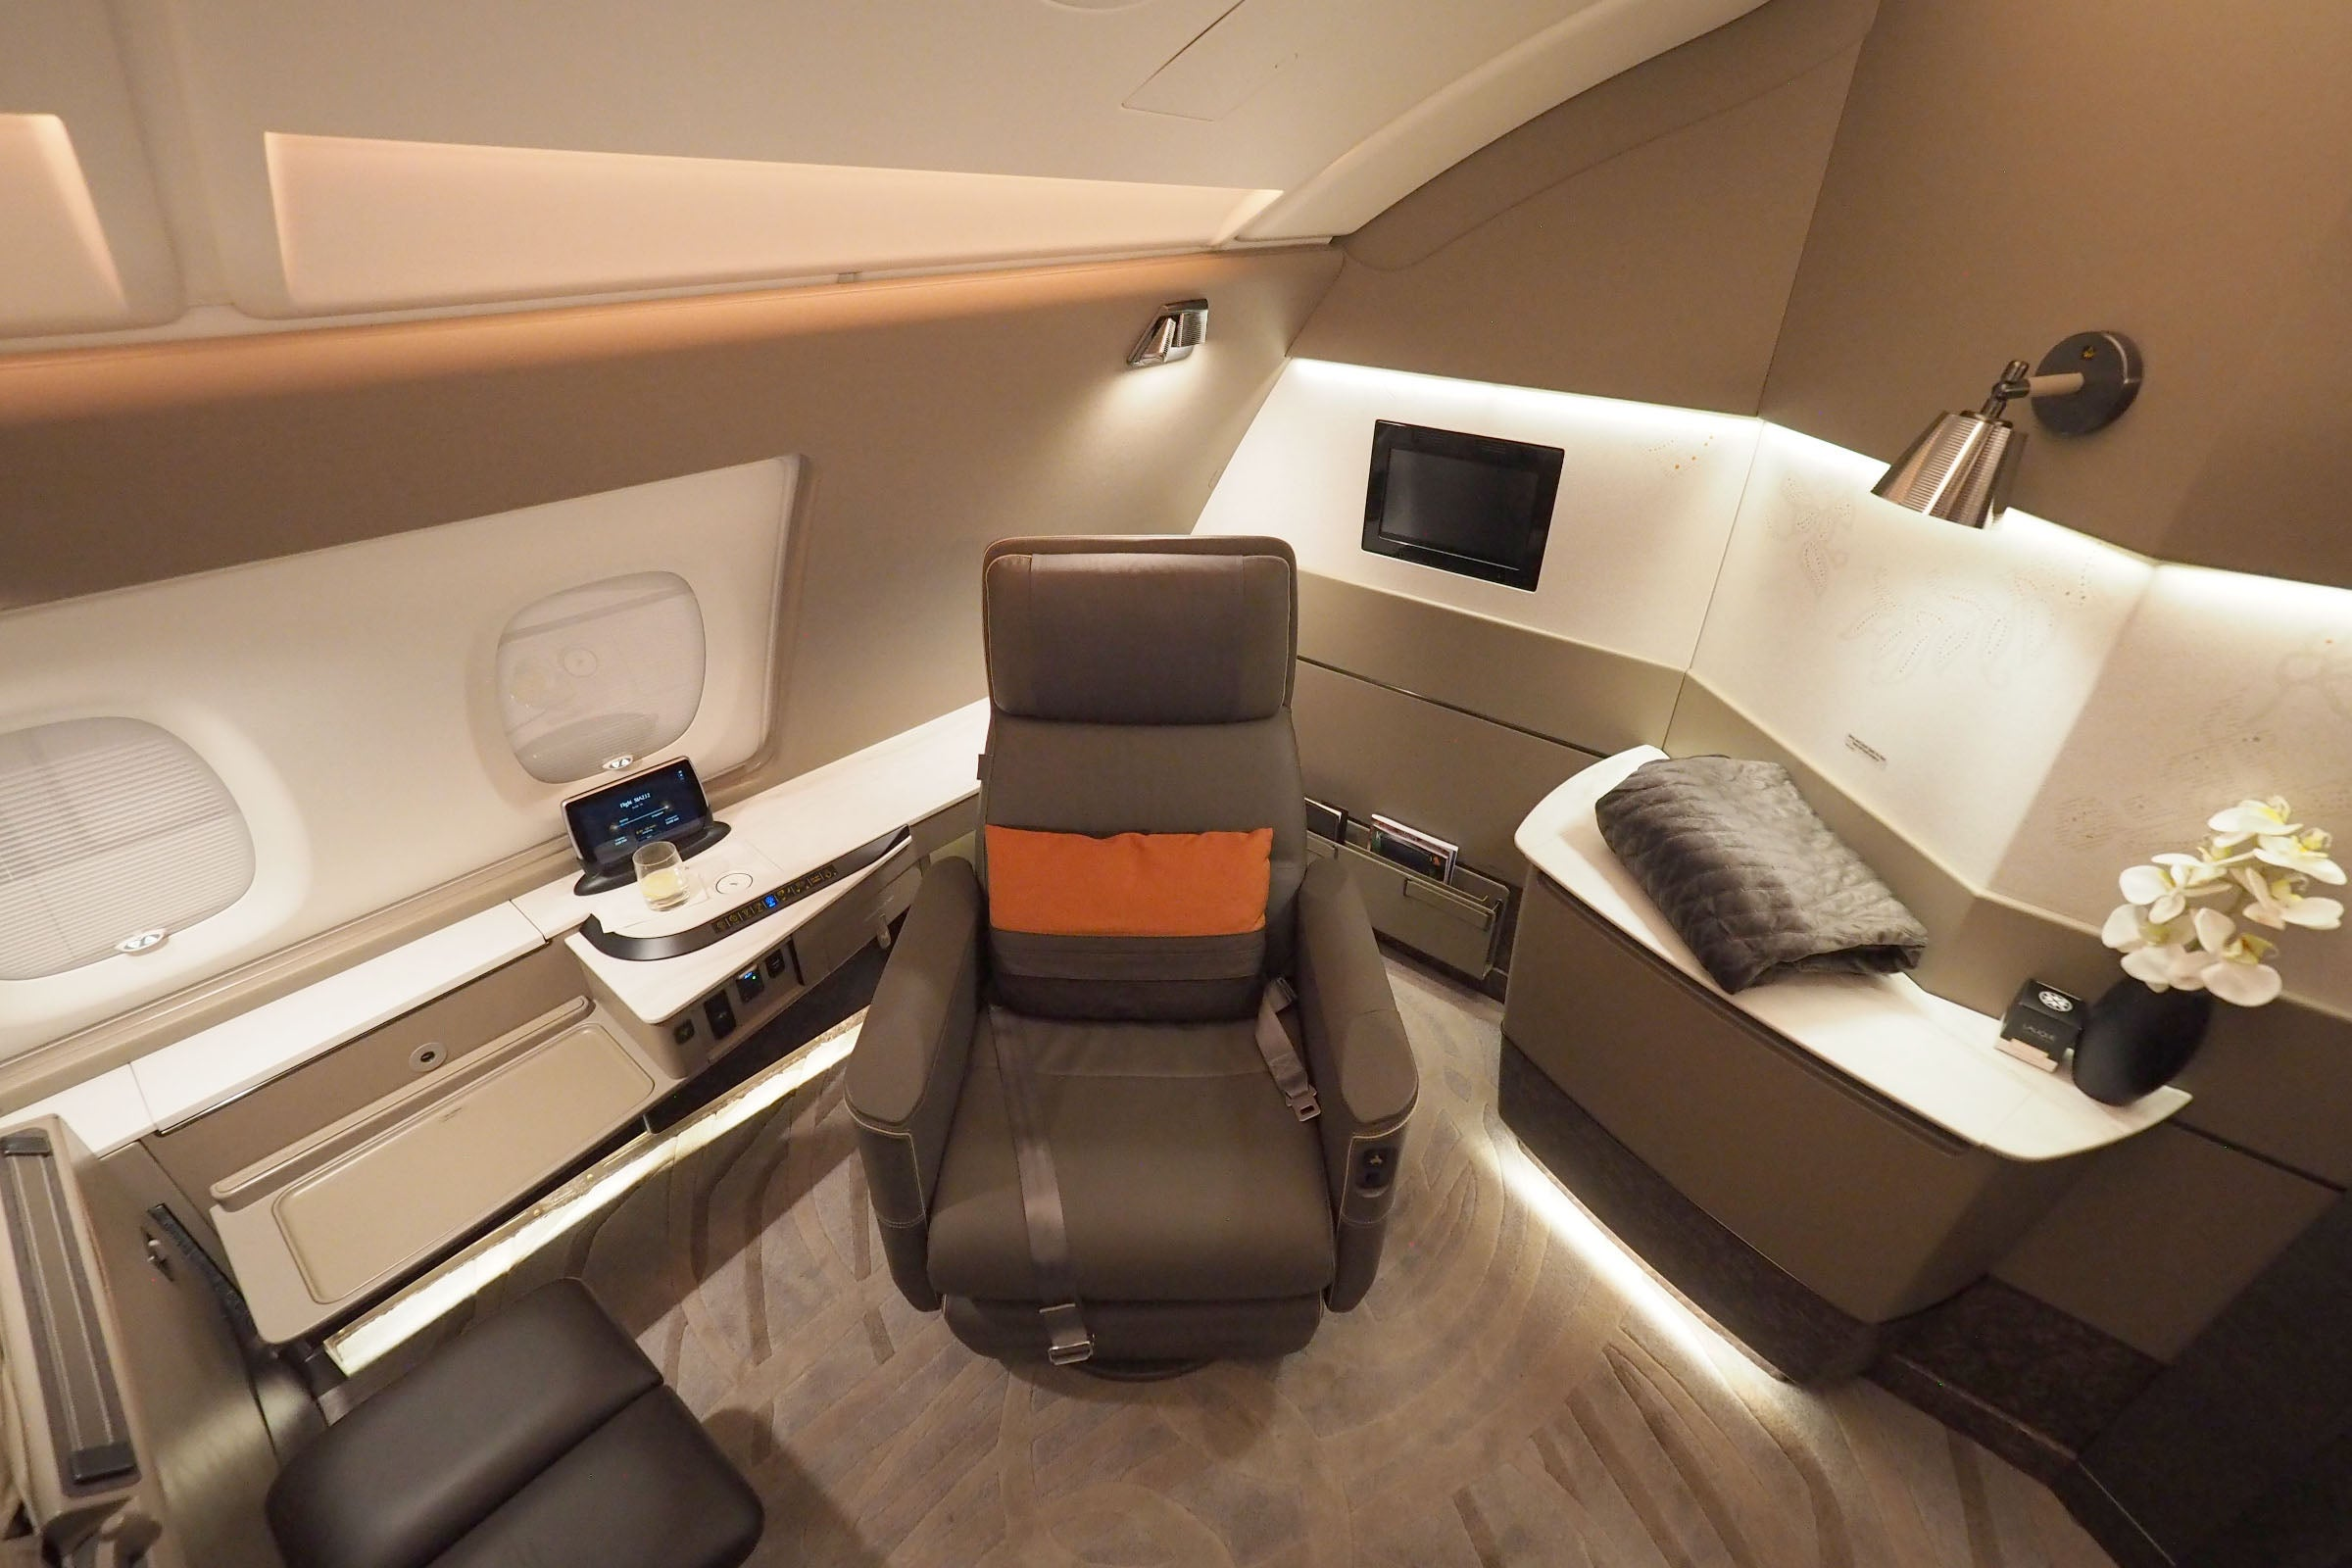 Singapore resumes retrofitting A380s with new cabins, much-improved suite